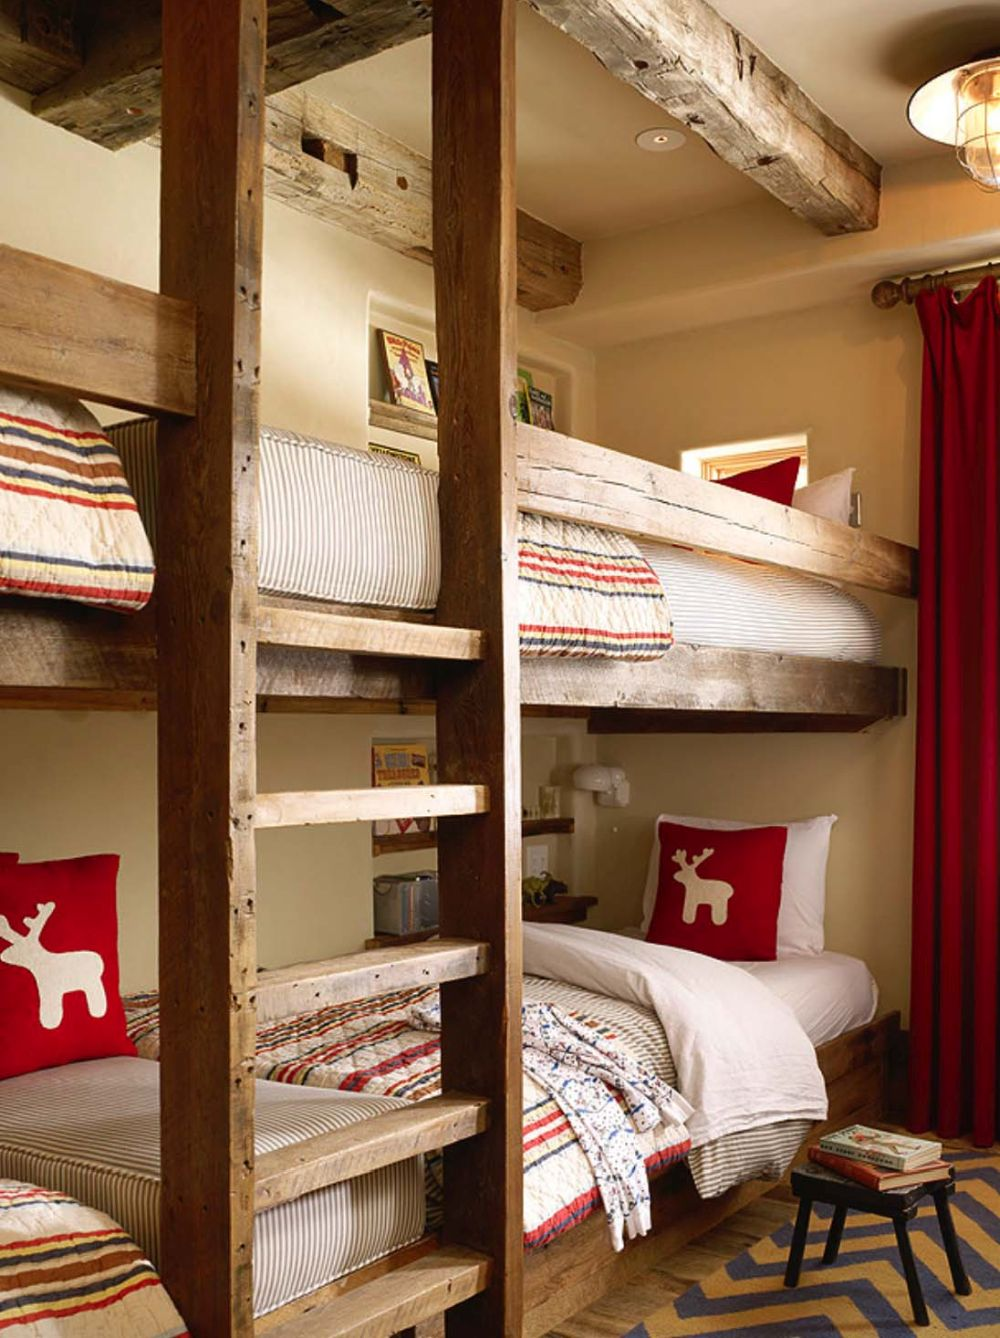 Two of the six bedrooms are meant to be kids' rooms and have bunk beds